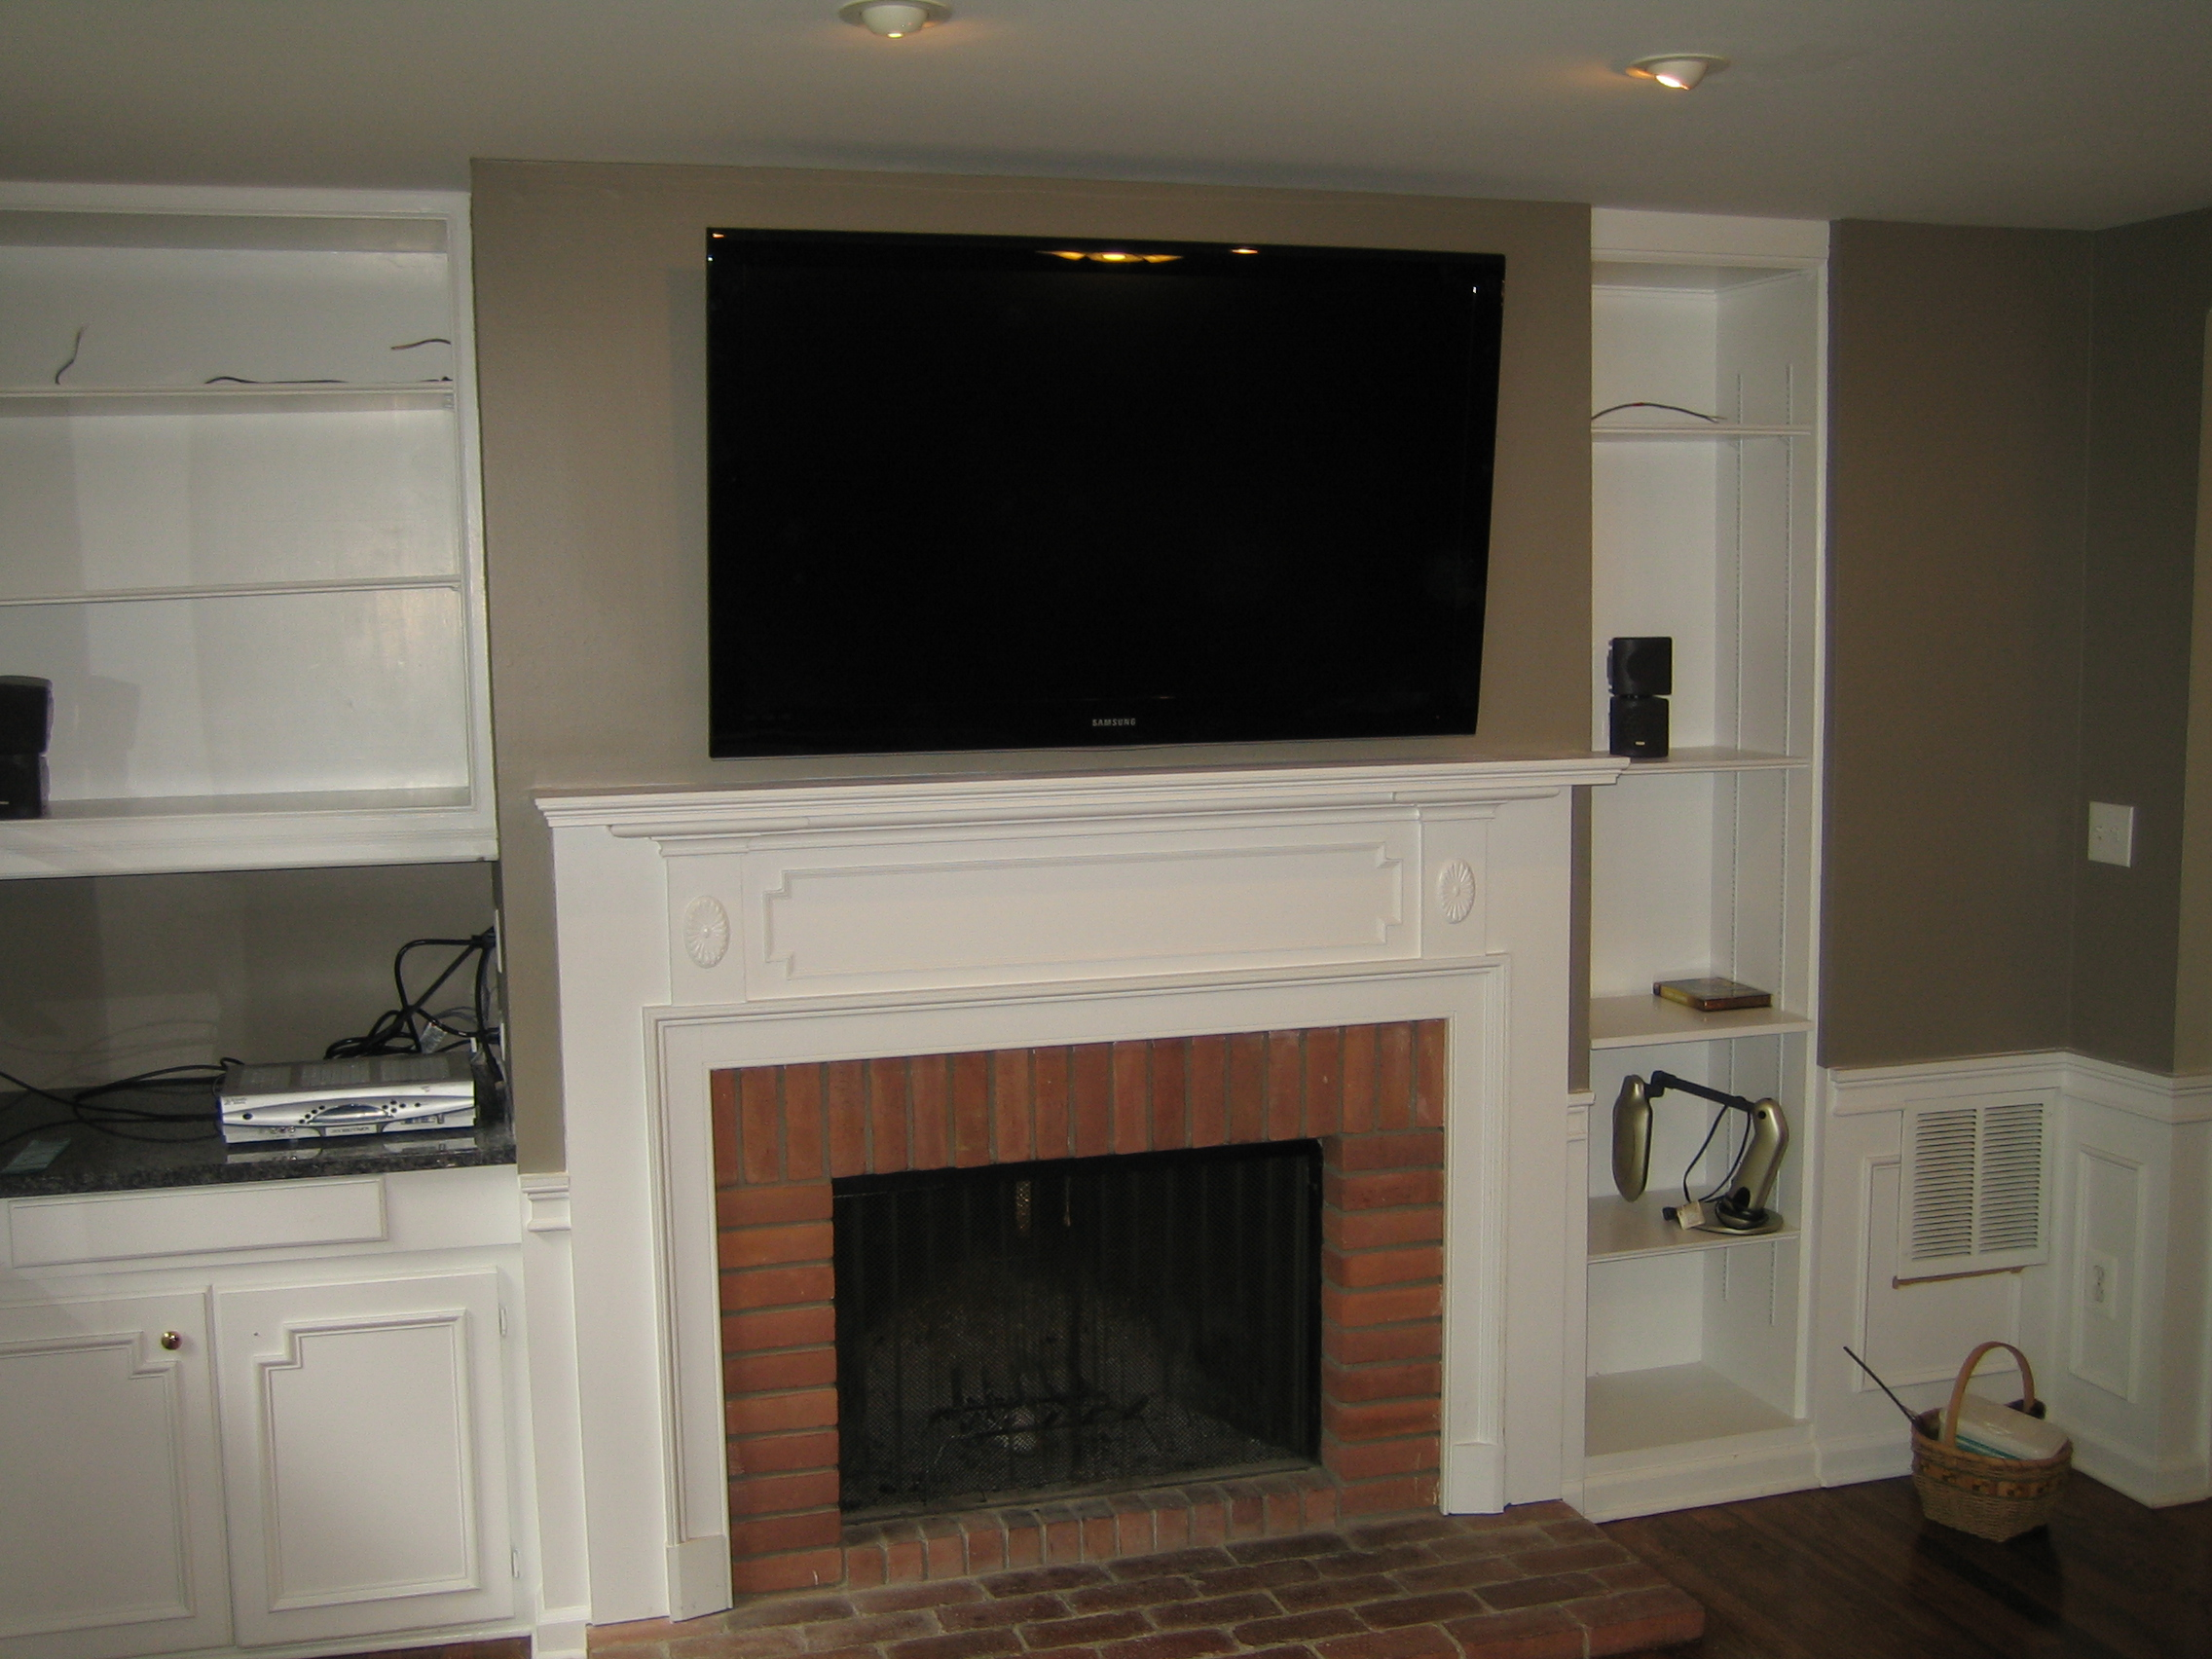 Woodbridge CT Mount Tv On Wall Home Theater Installation